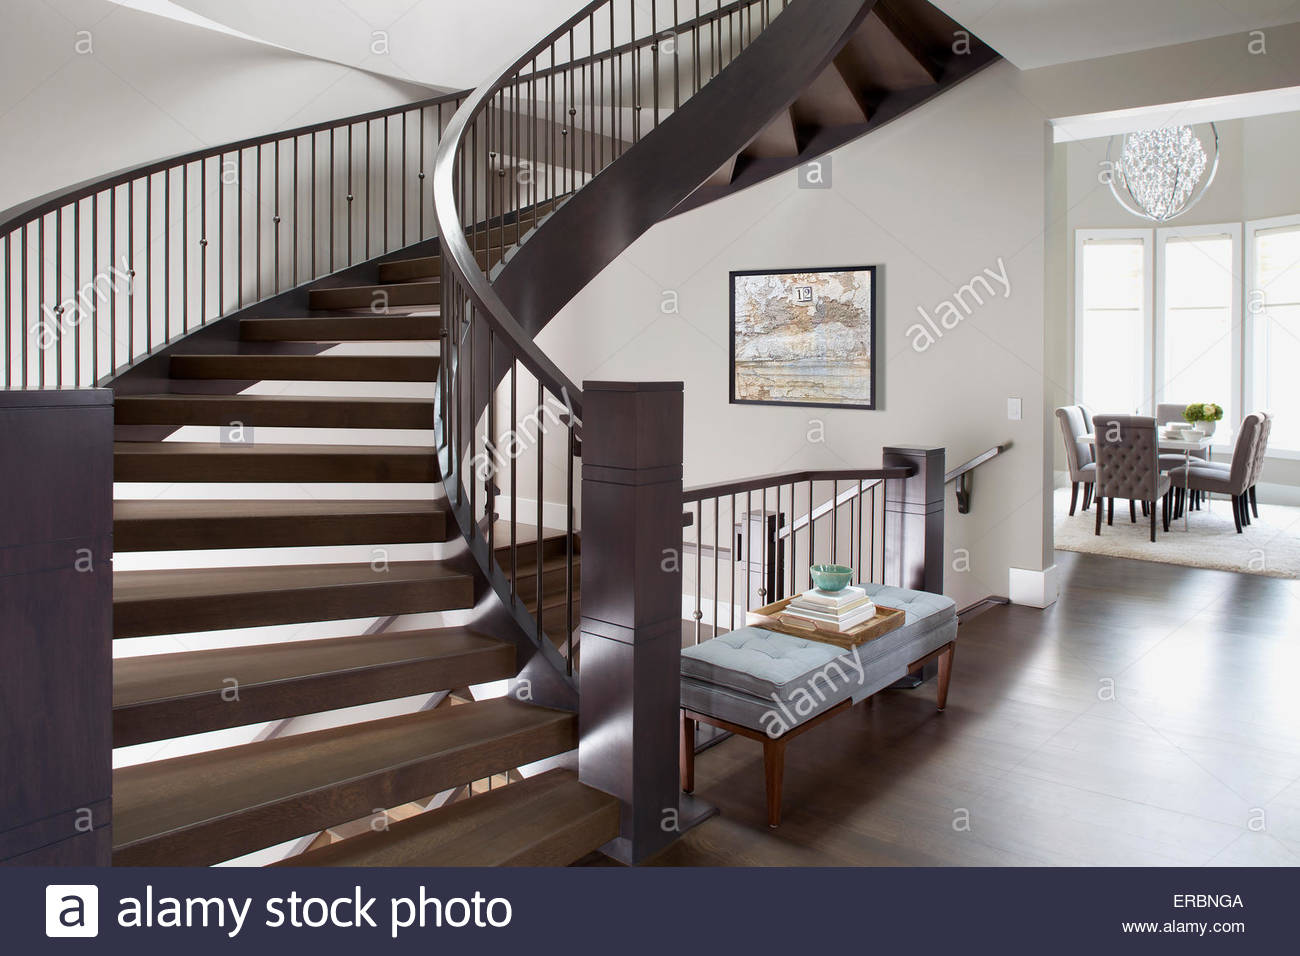 Spiral stock photos spiral stock images alamy for Spiral staircase house